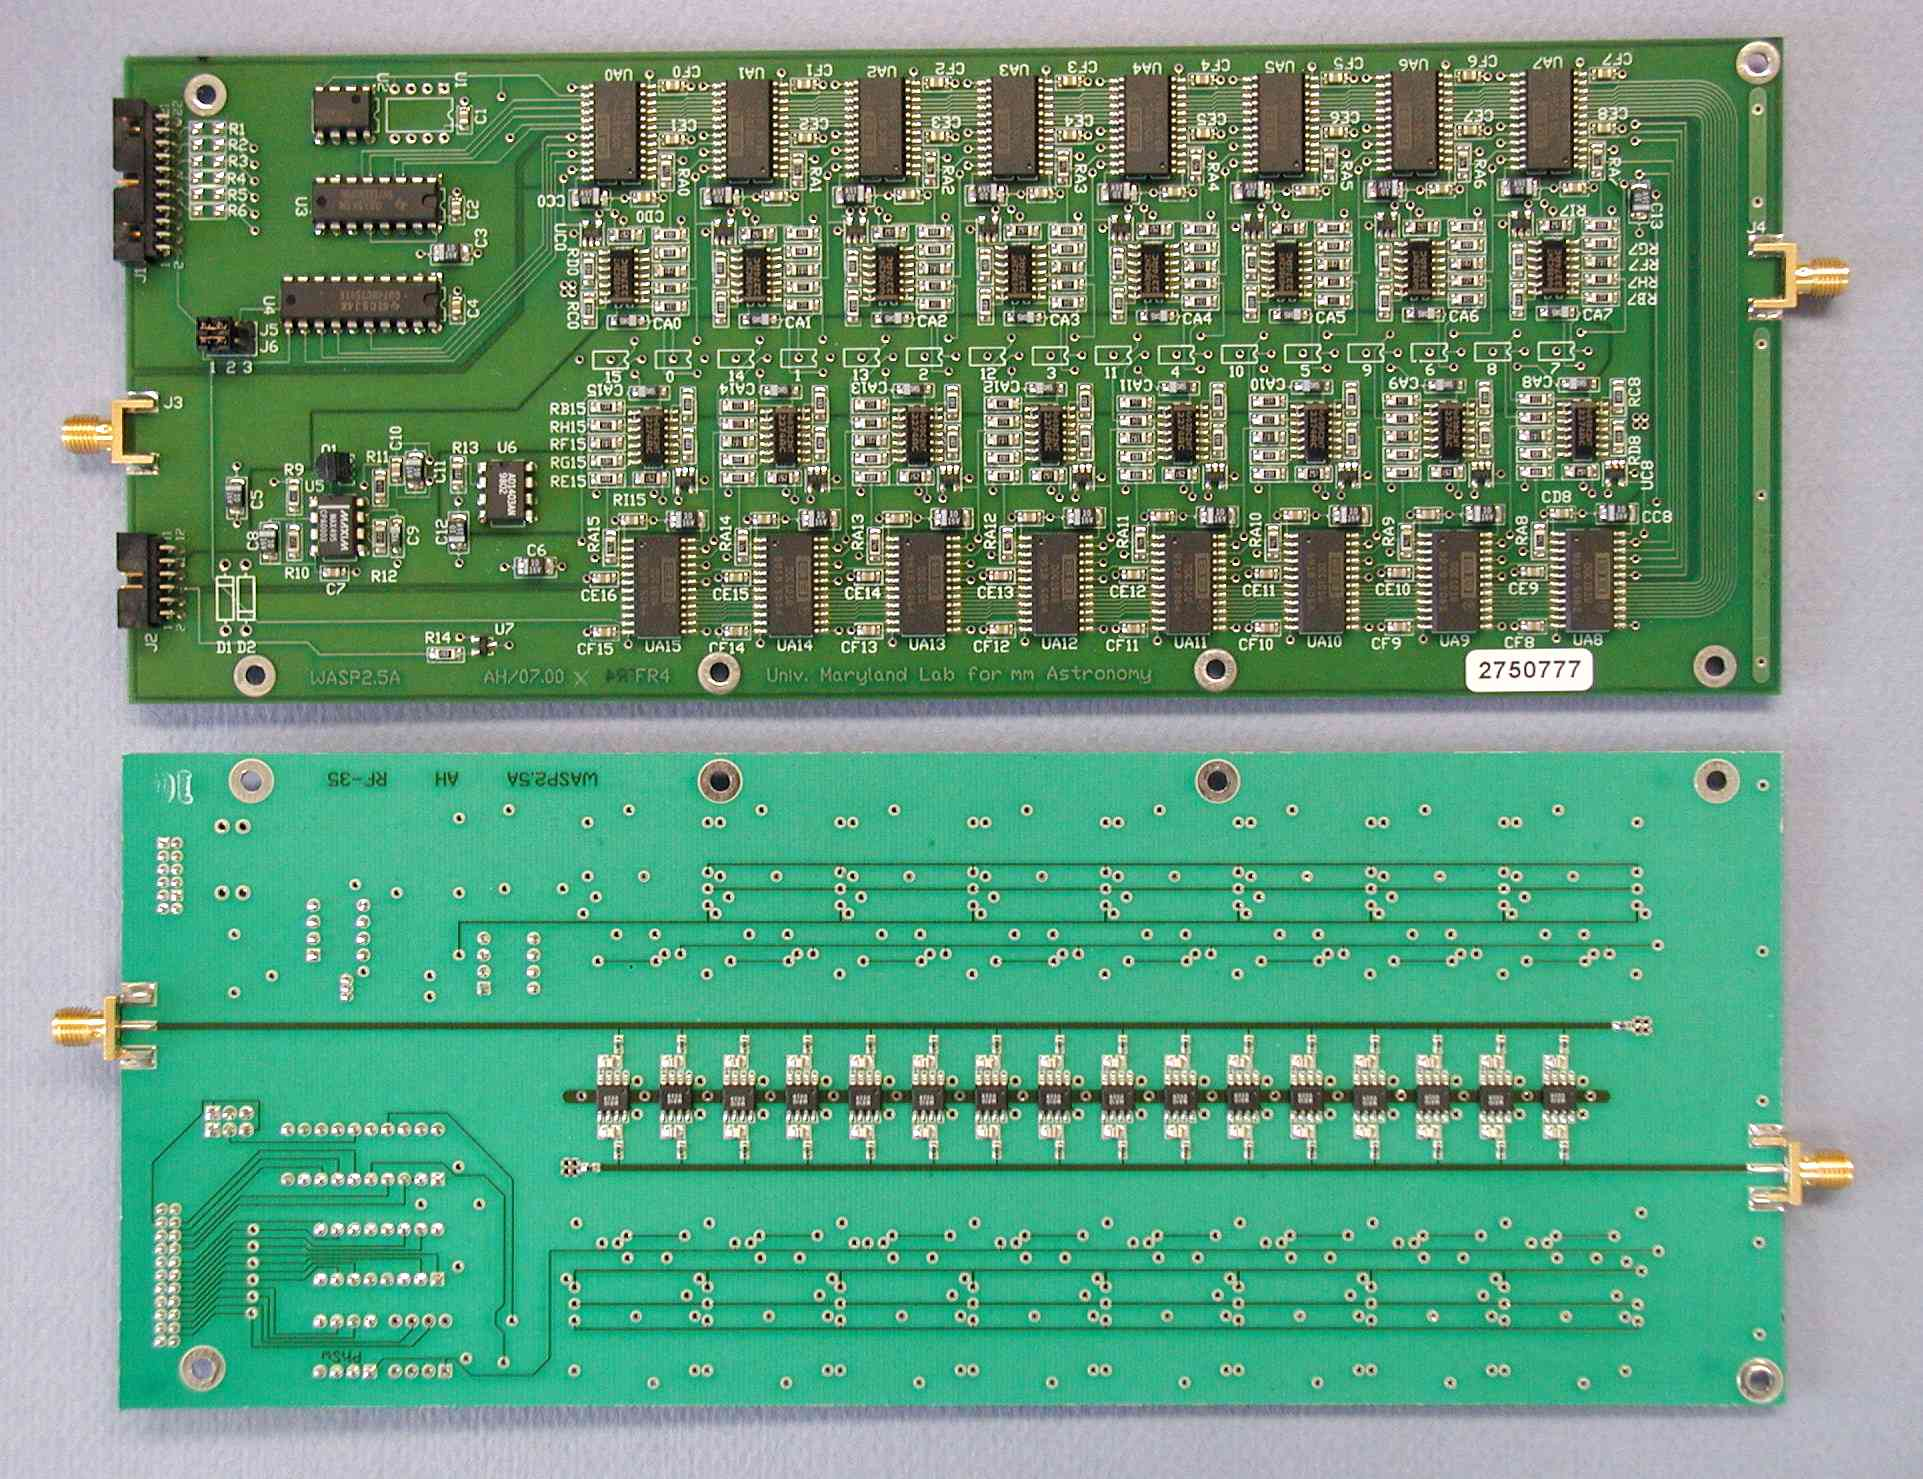 The Wasp2 Circuit Boards Are Four Layer Hybrids Of Microwave And Normal Fr 4 Board Material Most Parts Surface Mount Technology